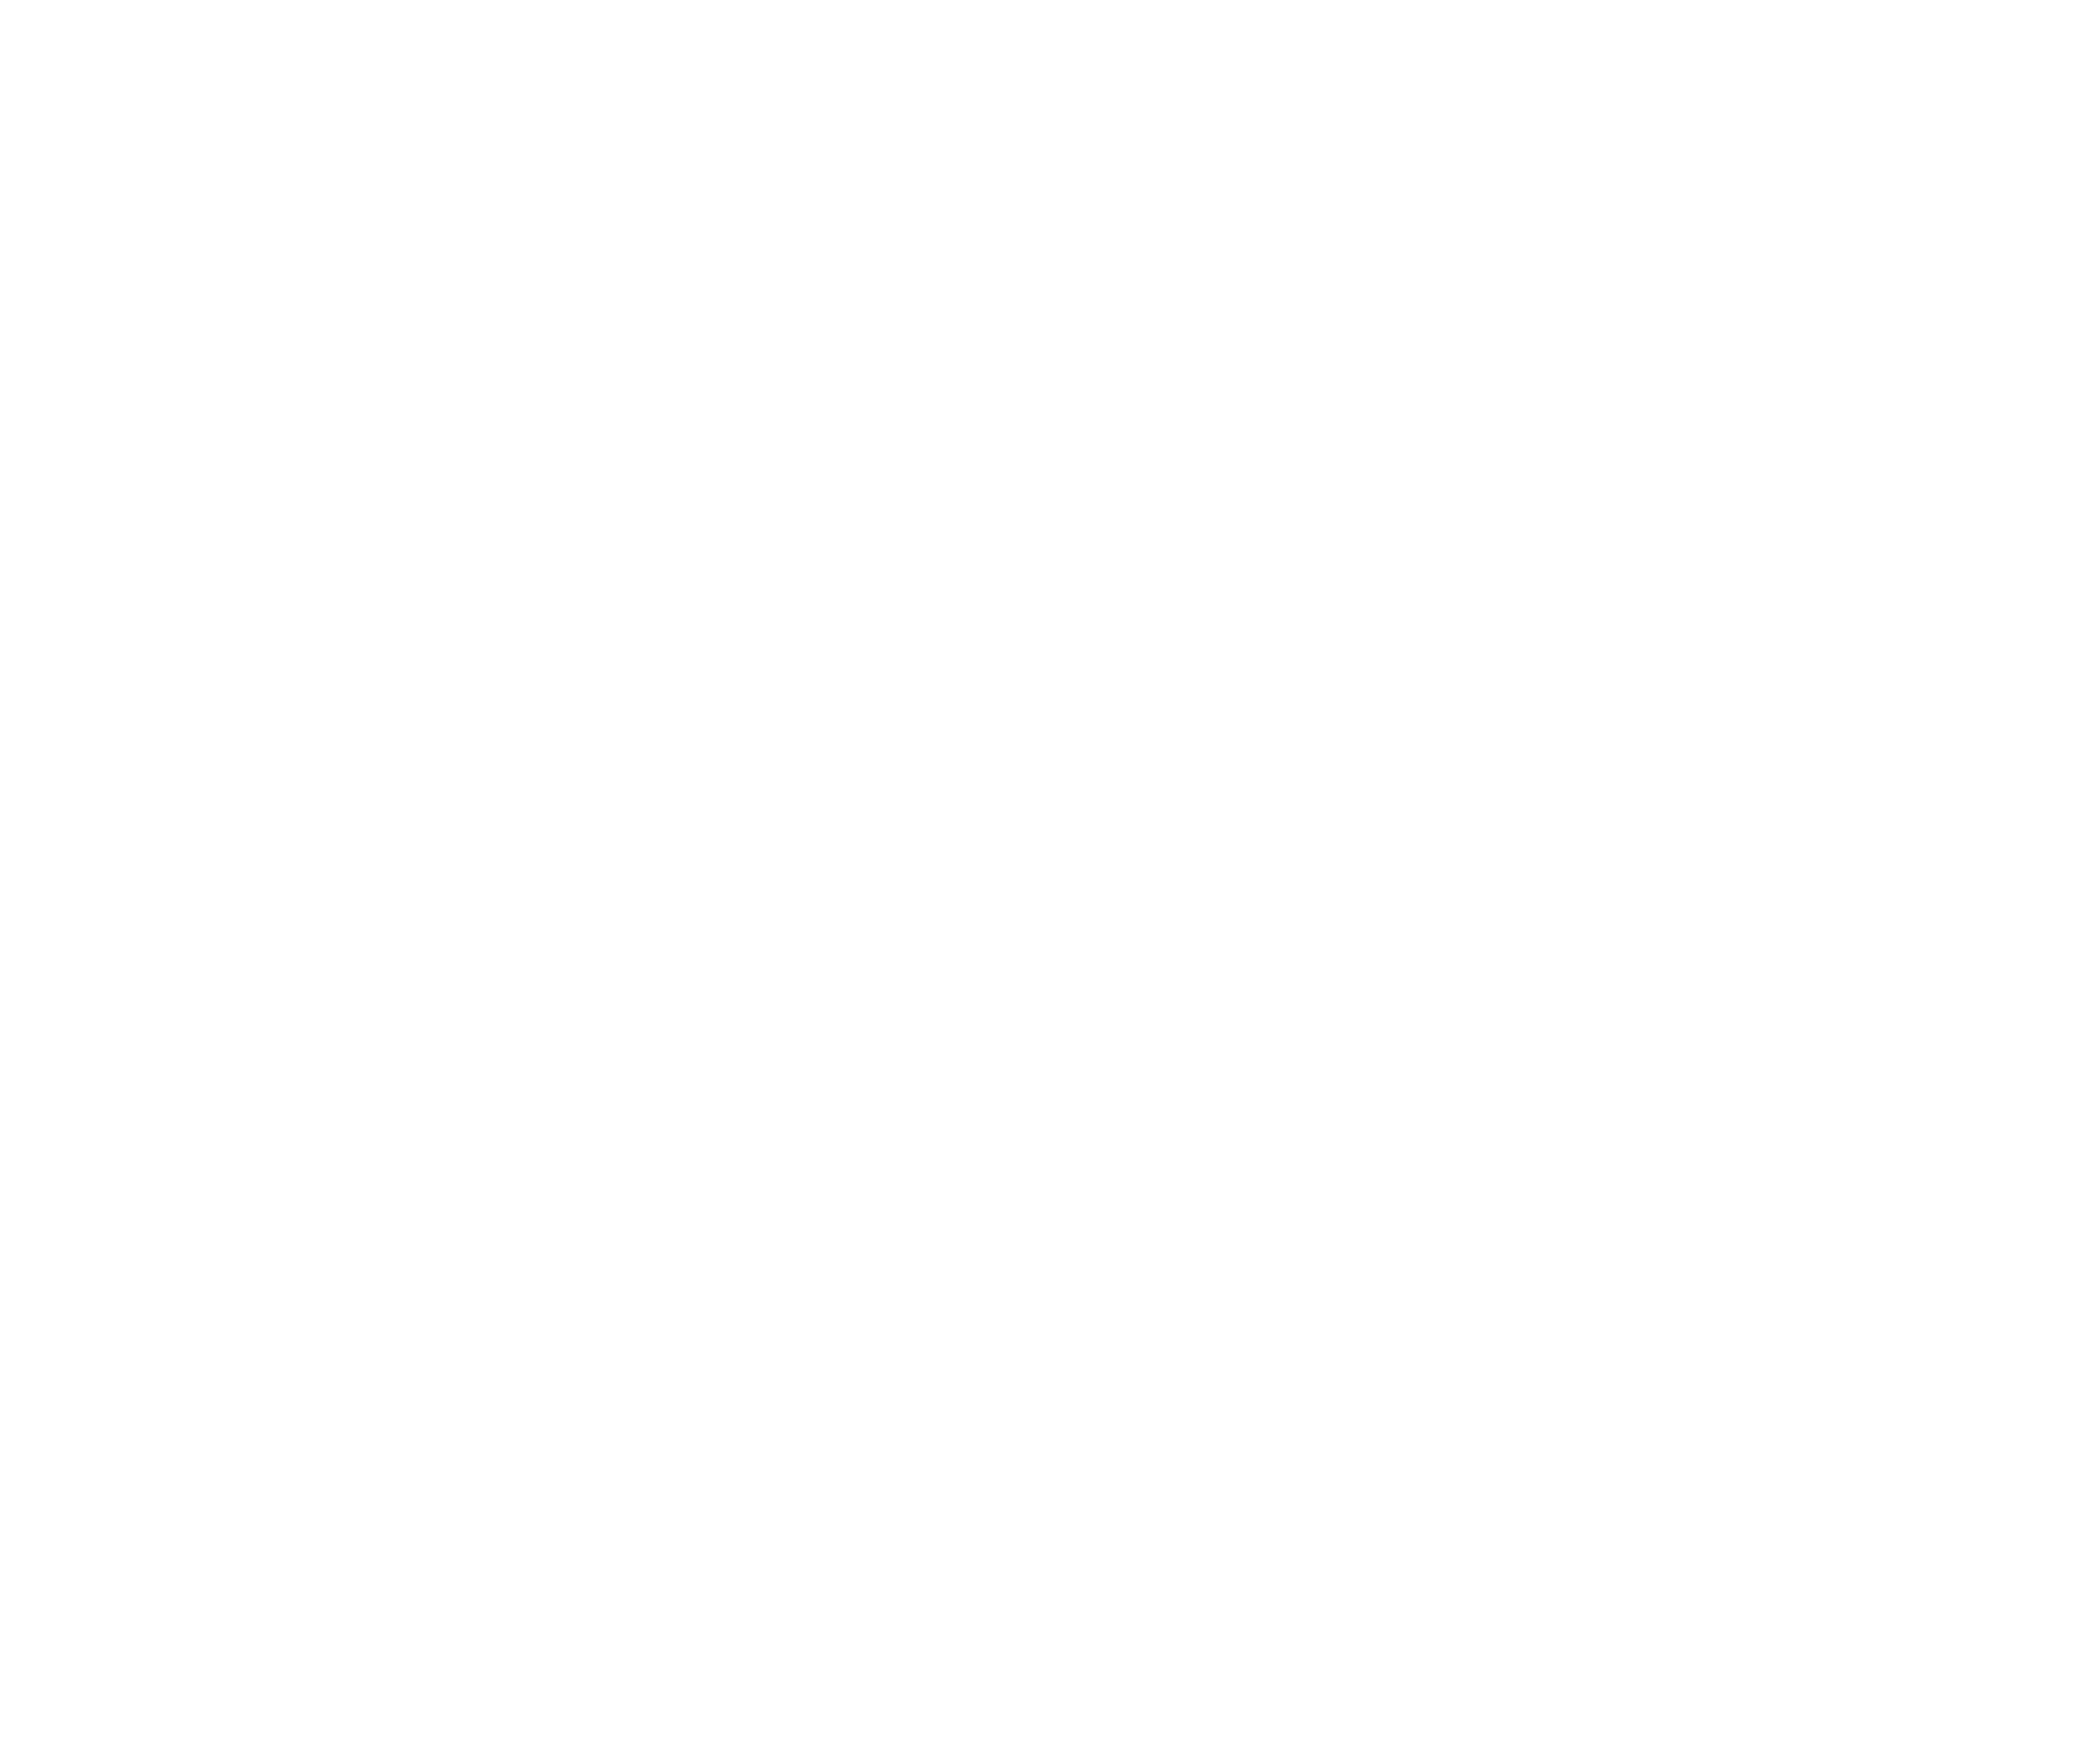 Lift Off Global Network - Tokyo 2020 - Official Selection